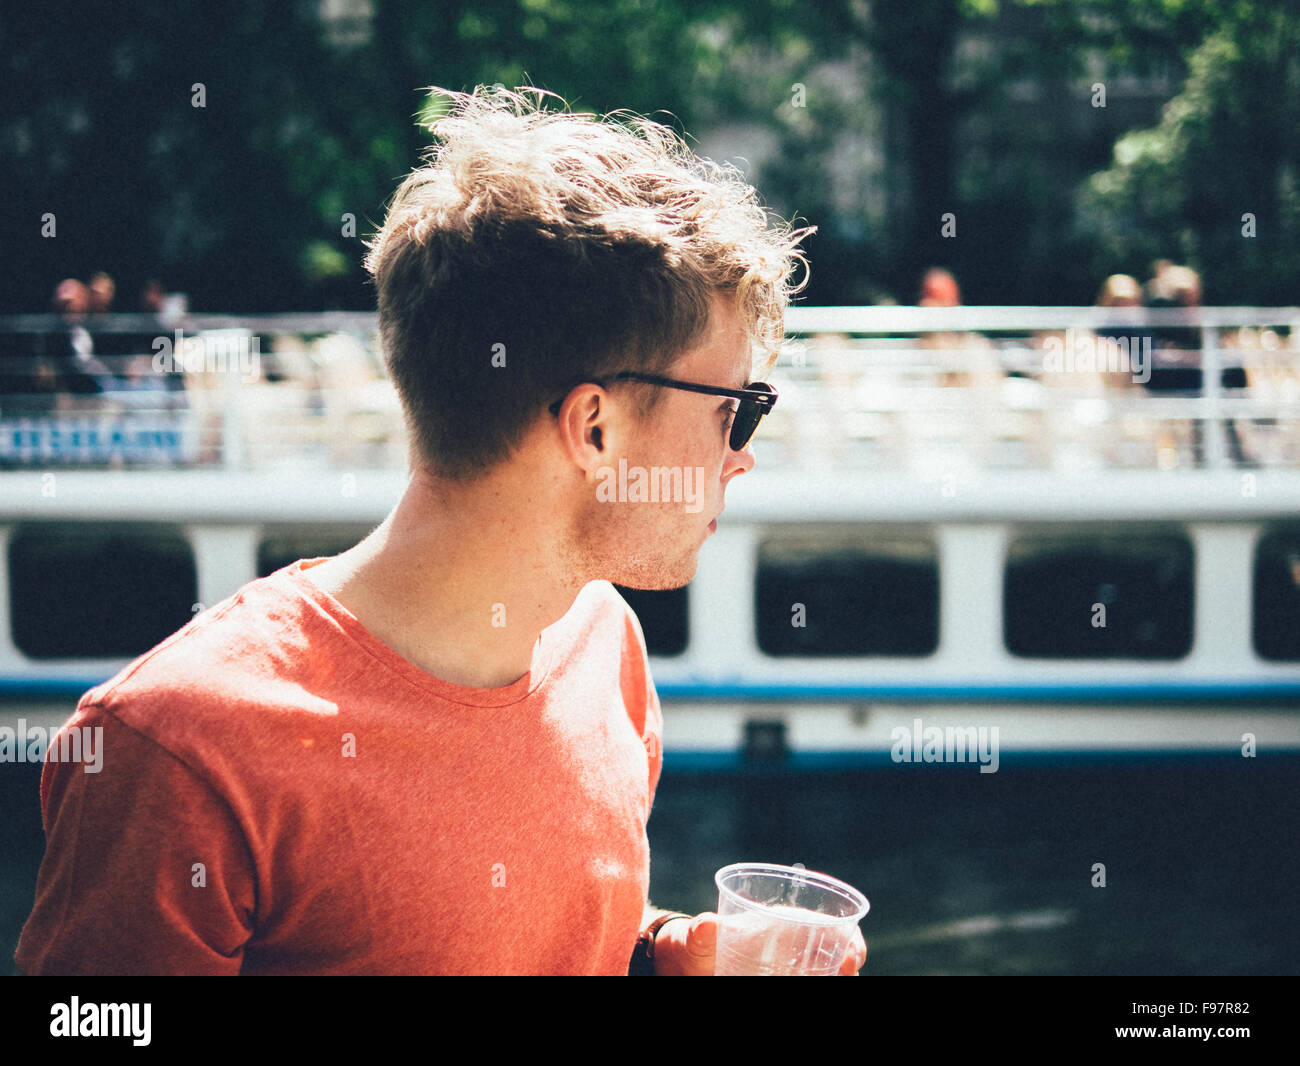 Man Wearing Sunglasses While Standing By Canal - Stock Image